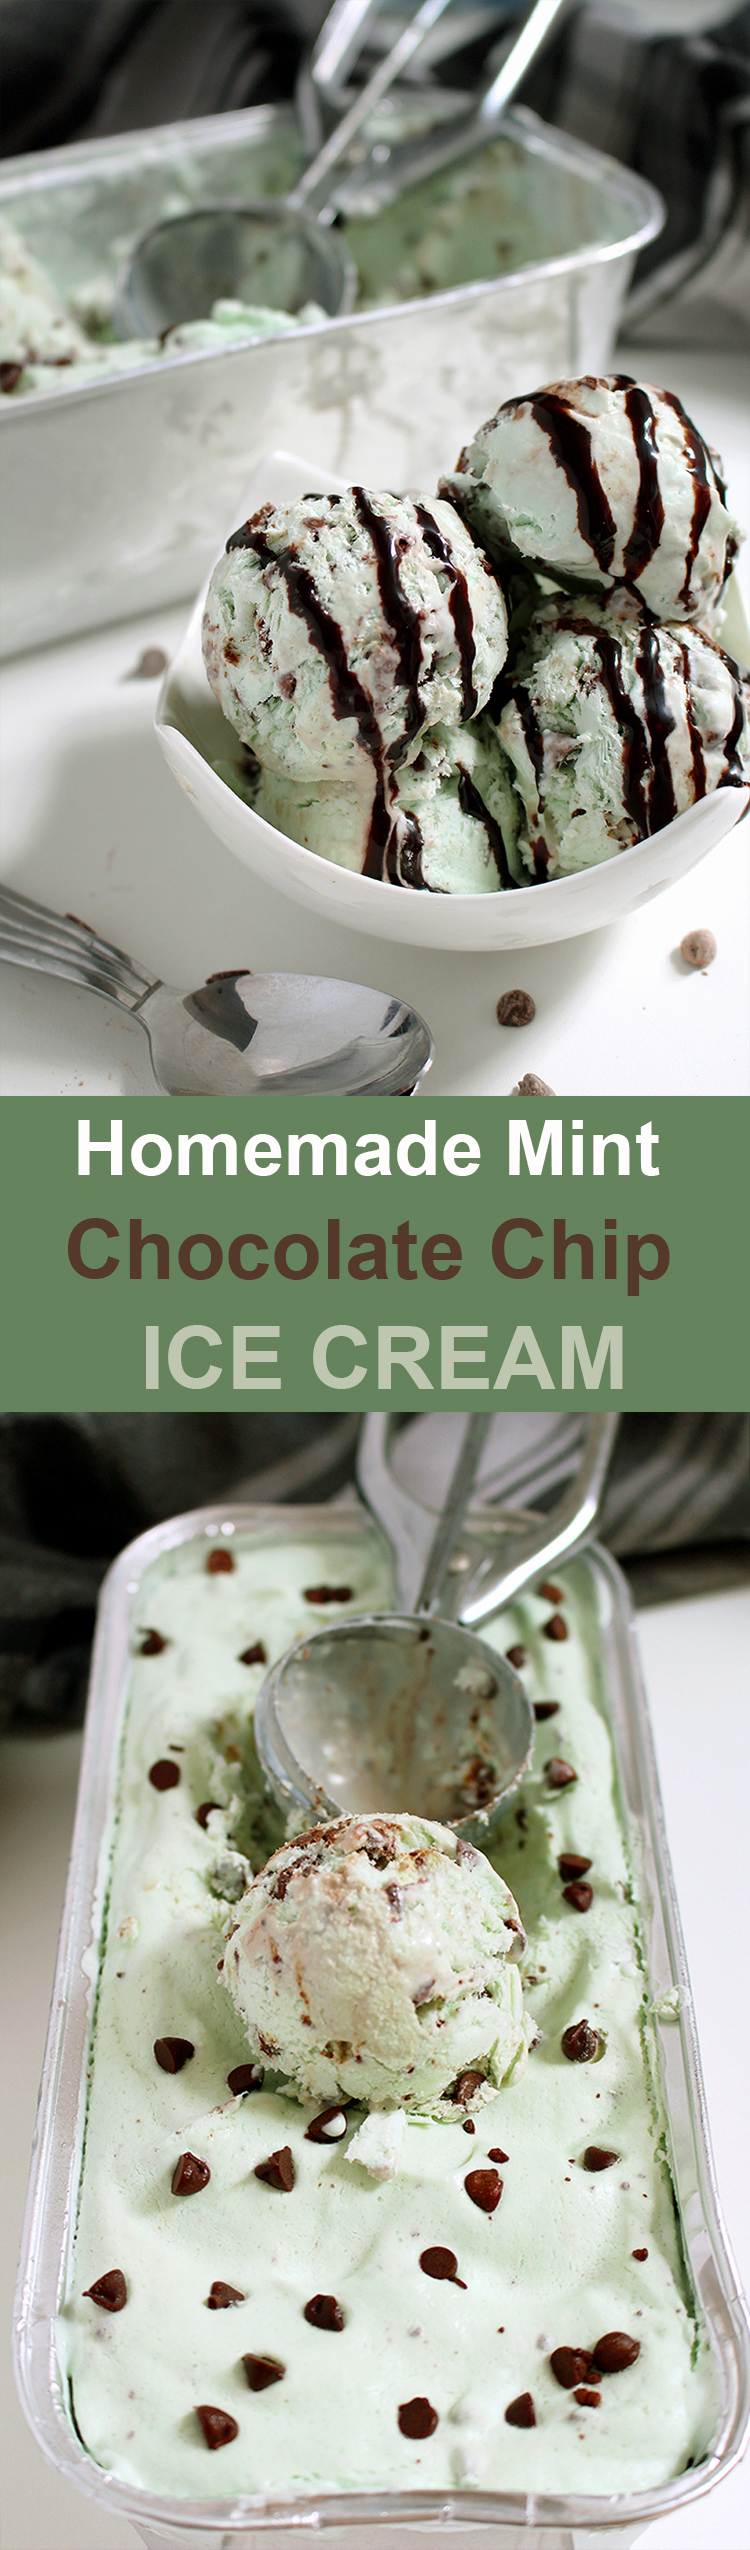 Homemade Mint Chocolate Chip Ice Cream Untitled-153